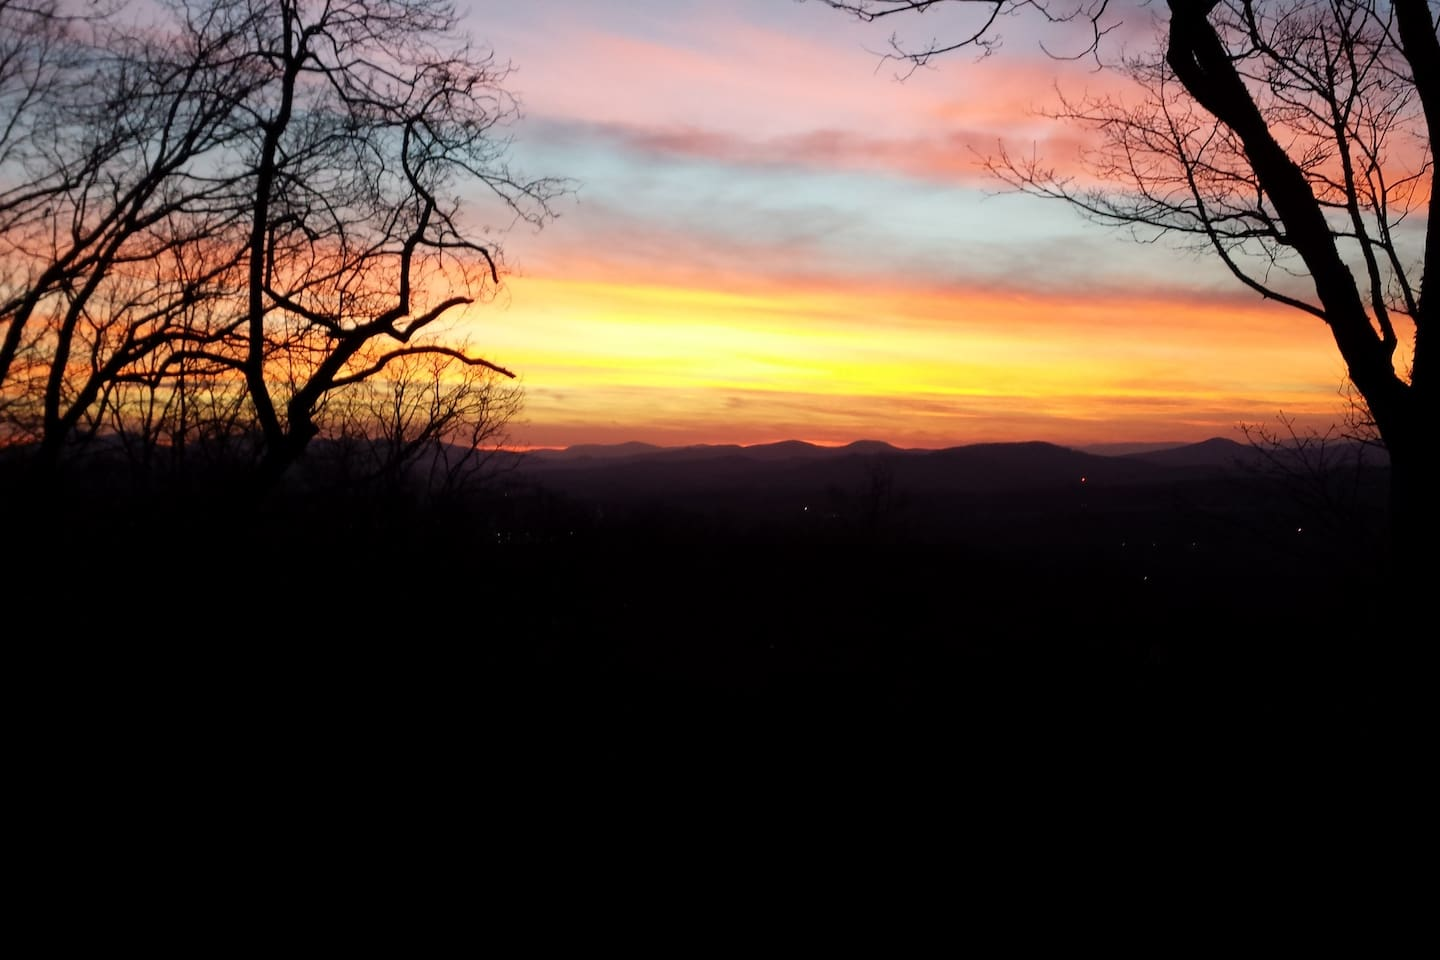 Mountains are all around the landscape...sunsets are great.